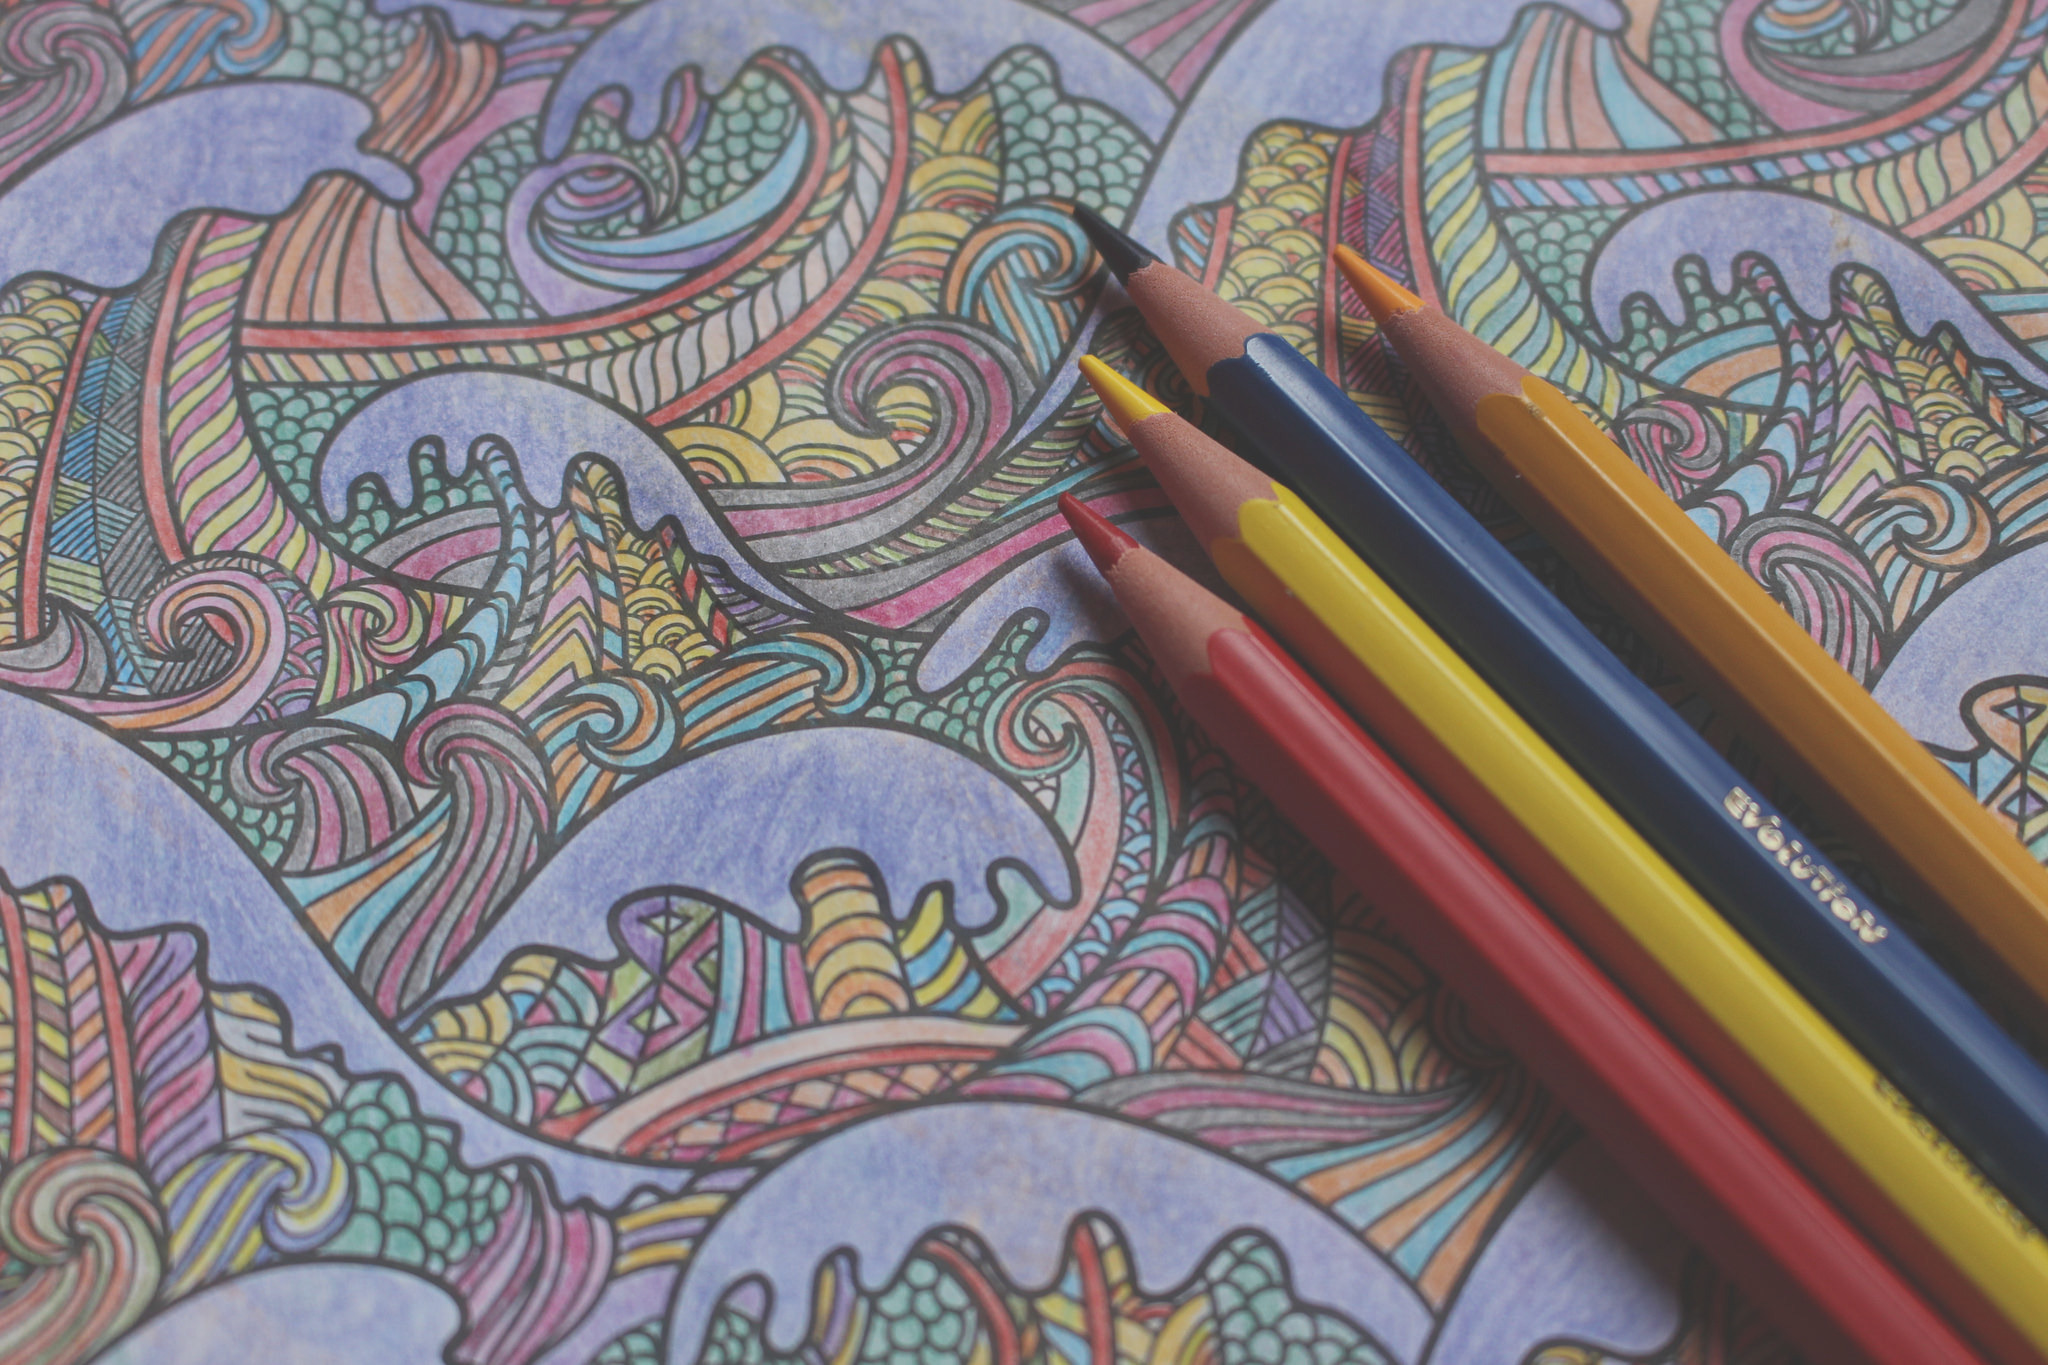 therapeutic science adult coloring books how childhood pastime helps adults